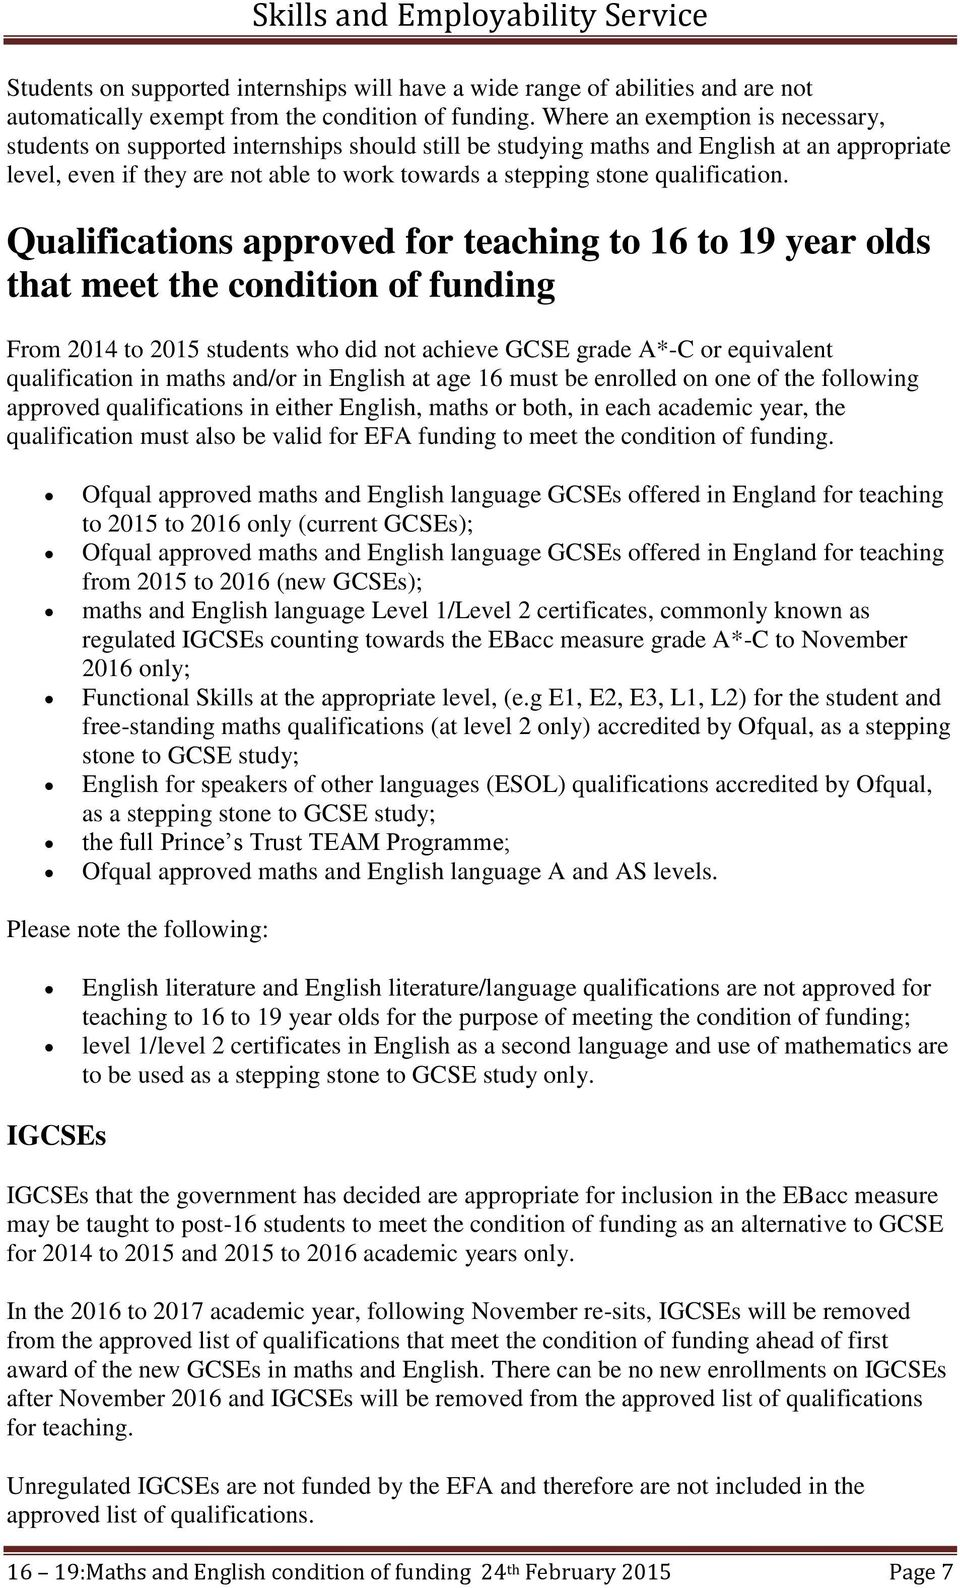 Qualifications approved for teaching to 16 to 19 year olds that meet the condition of funding From 2014 to 2015 students who did not achieve GCSE grade A*-C or equivalent qualification in maths